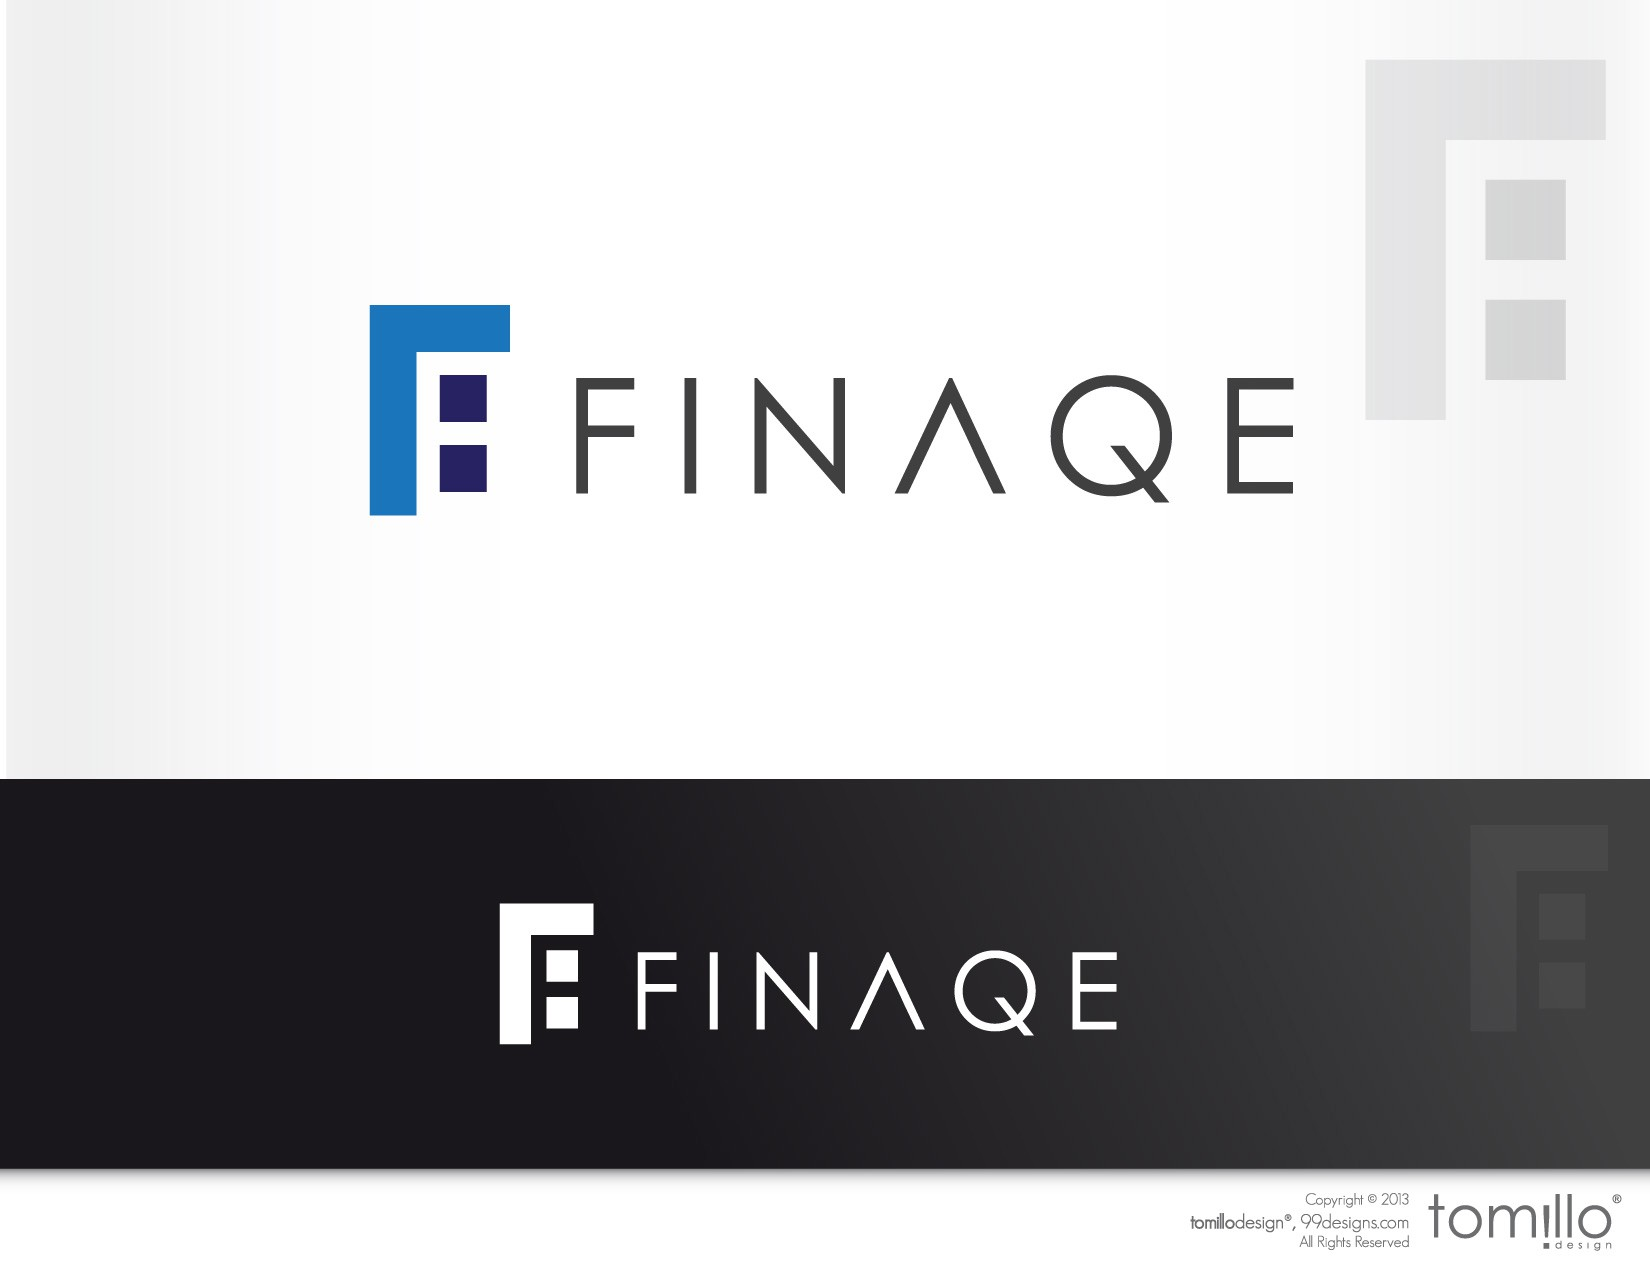 Logo for Finaqe, a financial services provider